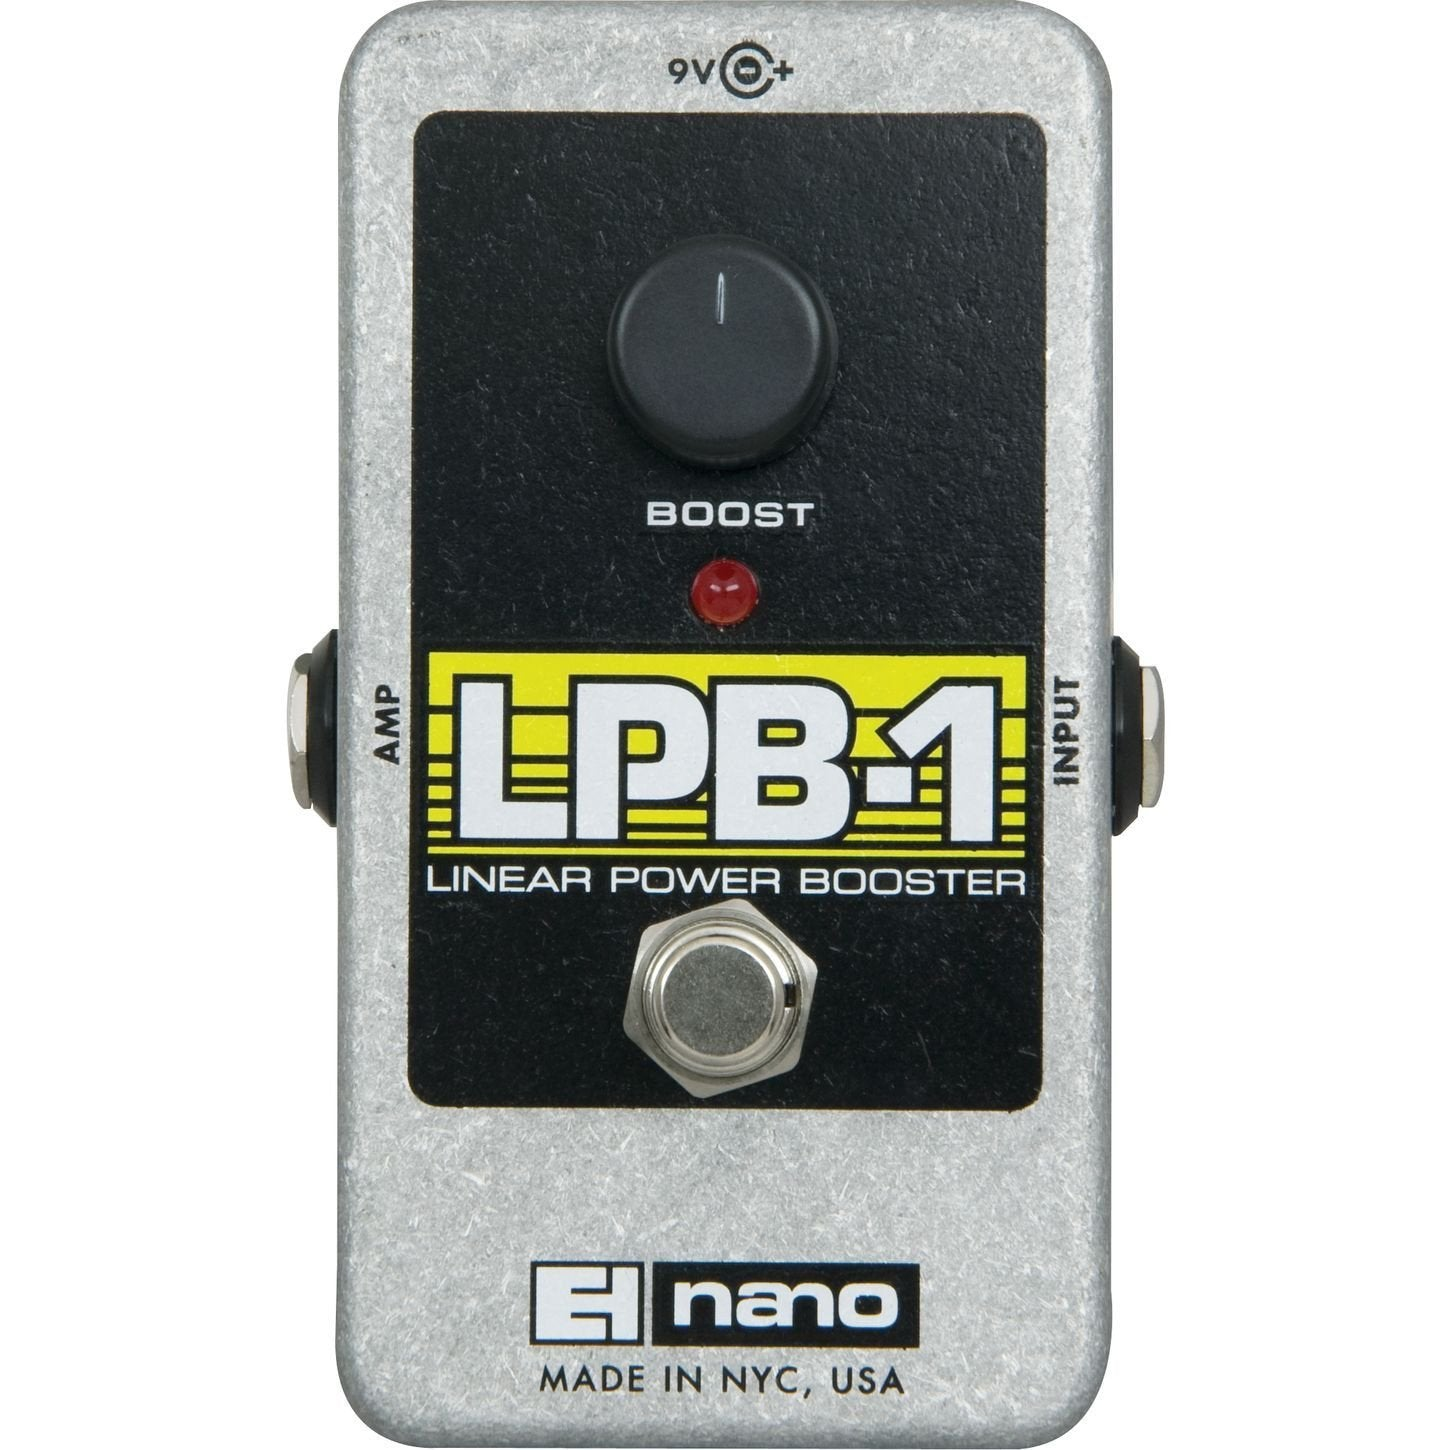 Electro-Harmonix Nano LPB-1 Power Booster Guitar Effects Pedal